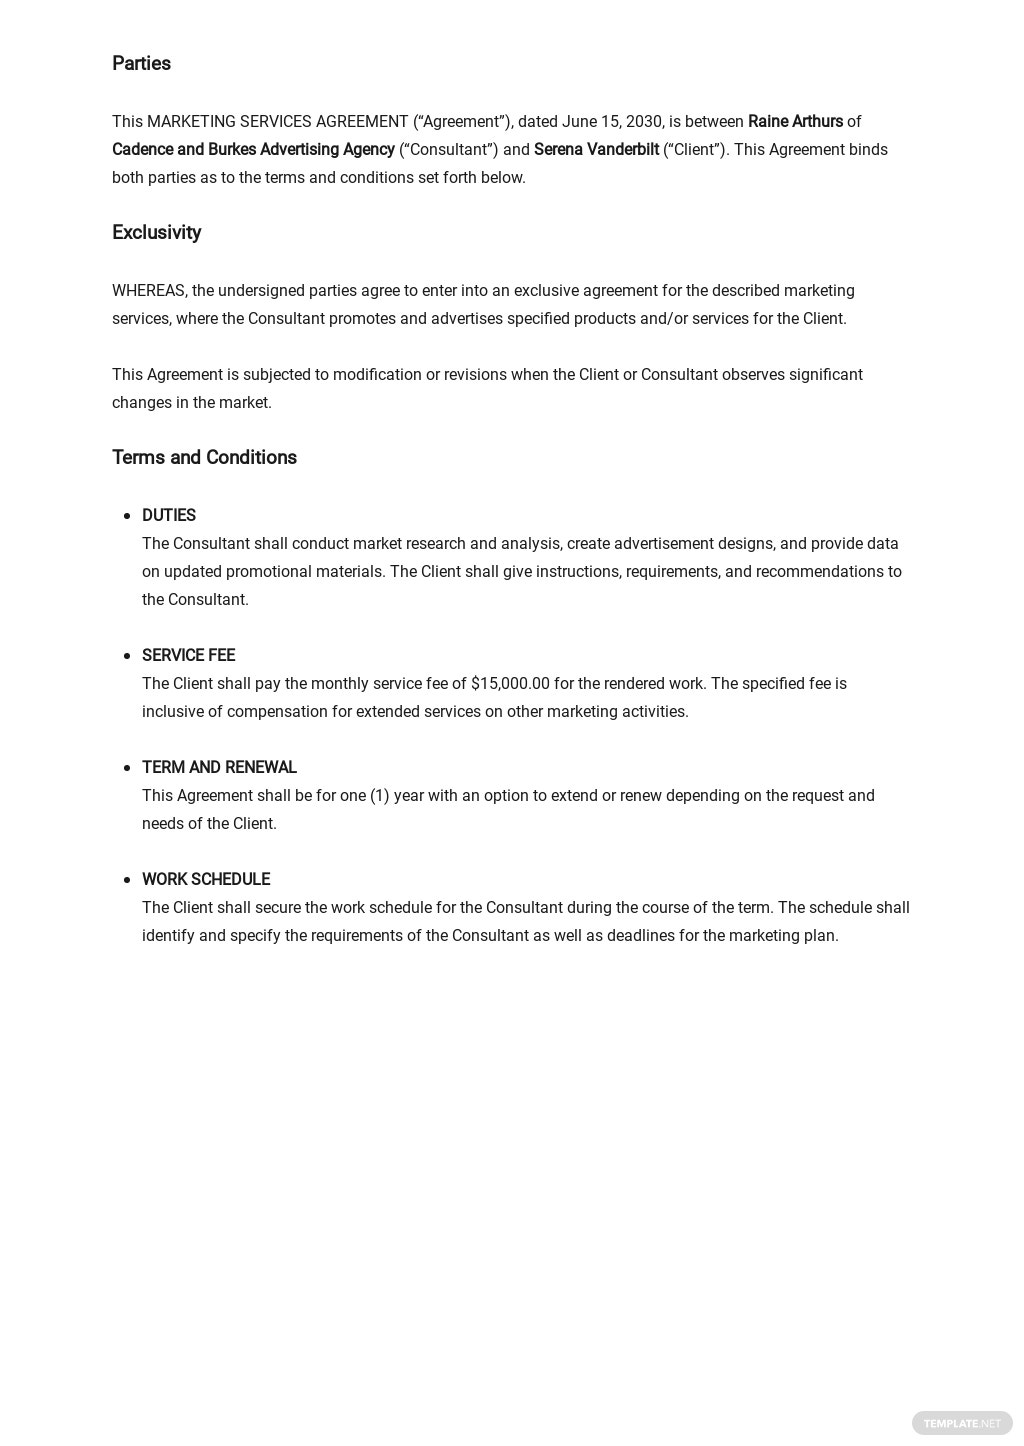 Marketing Services Agreement Template [Free PDF] - Google Docs, Word, Apple Pages